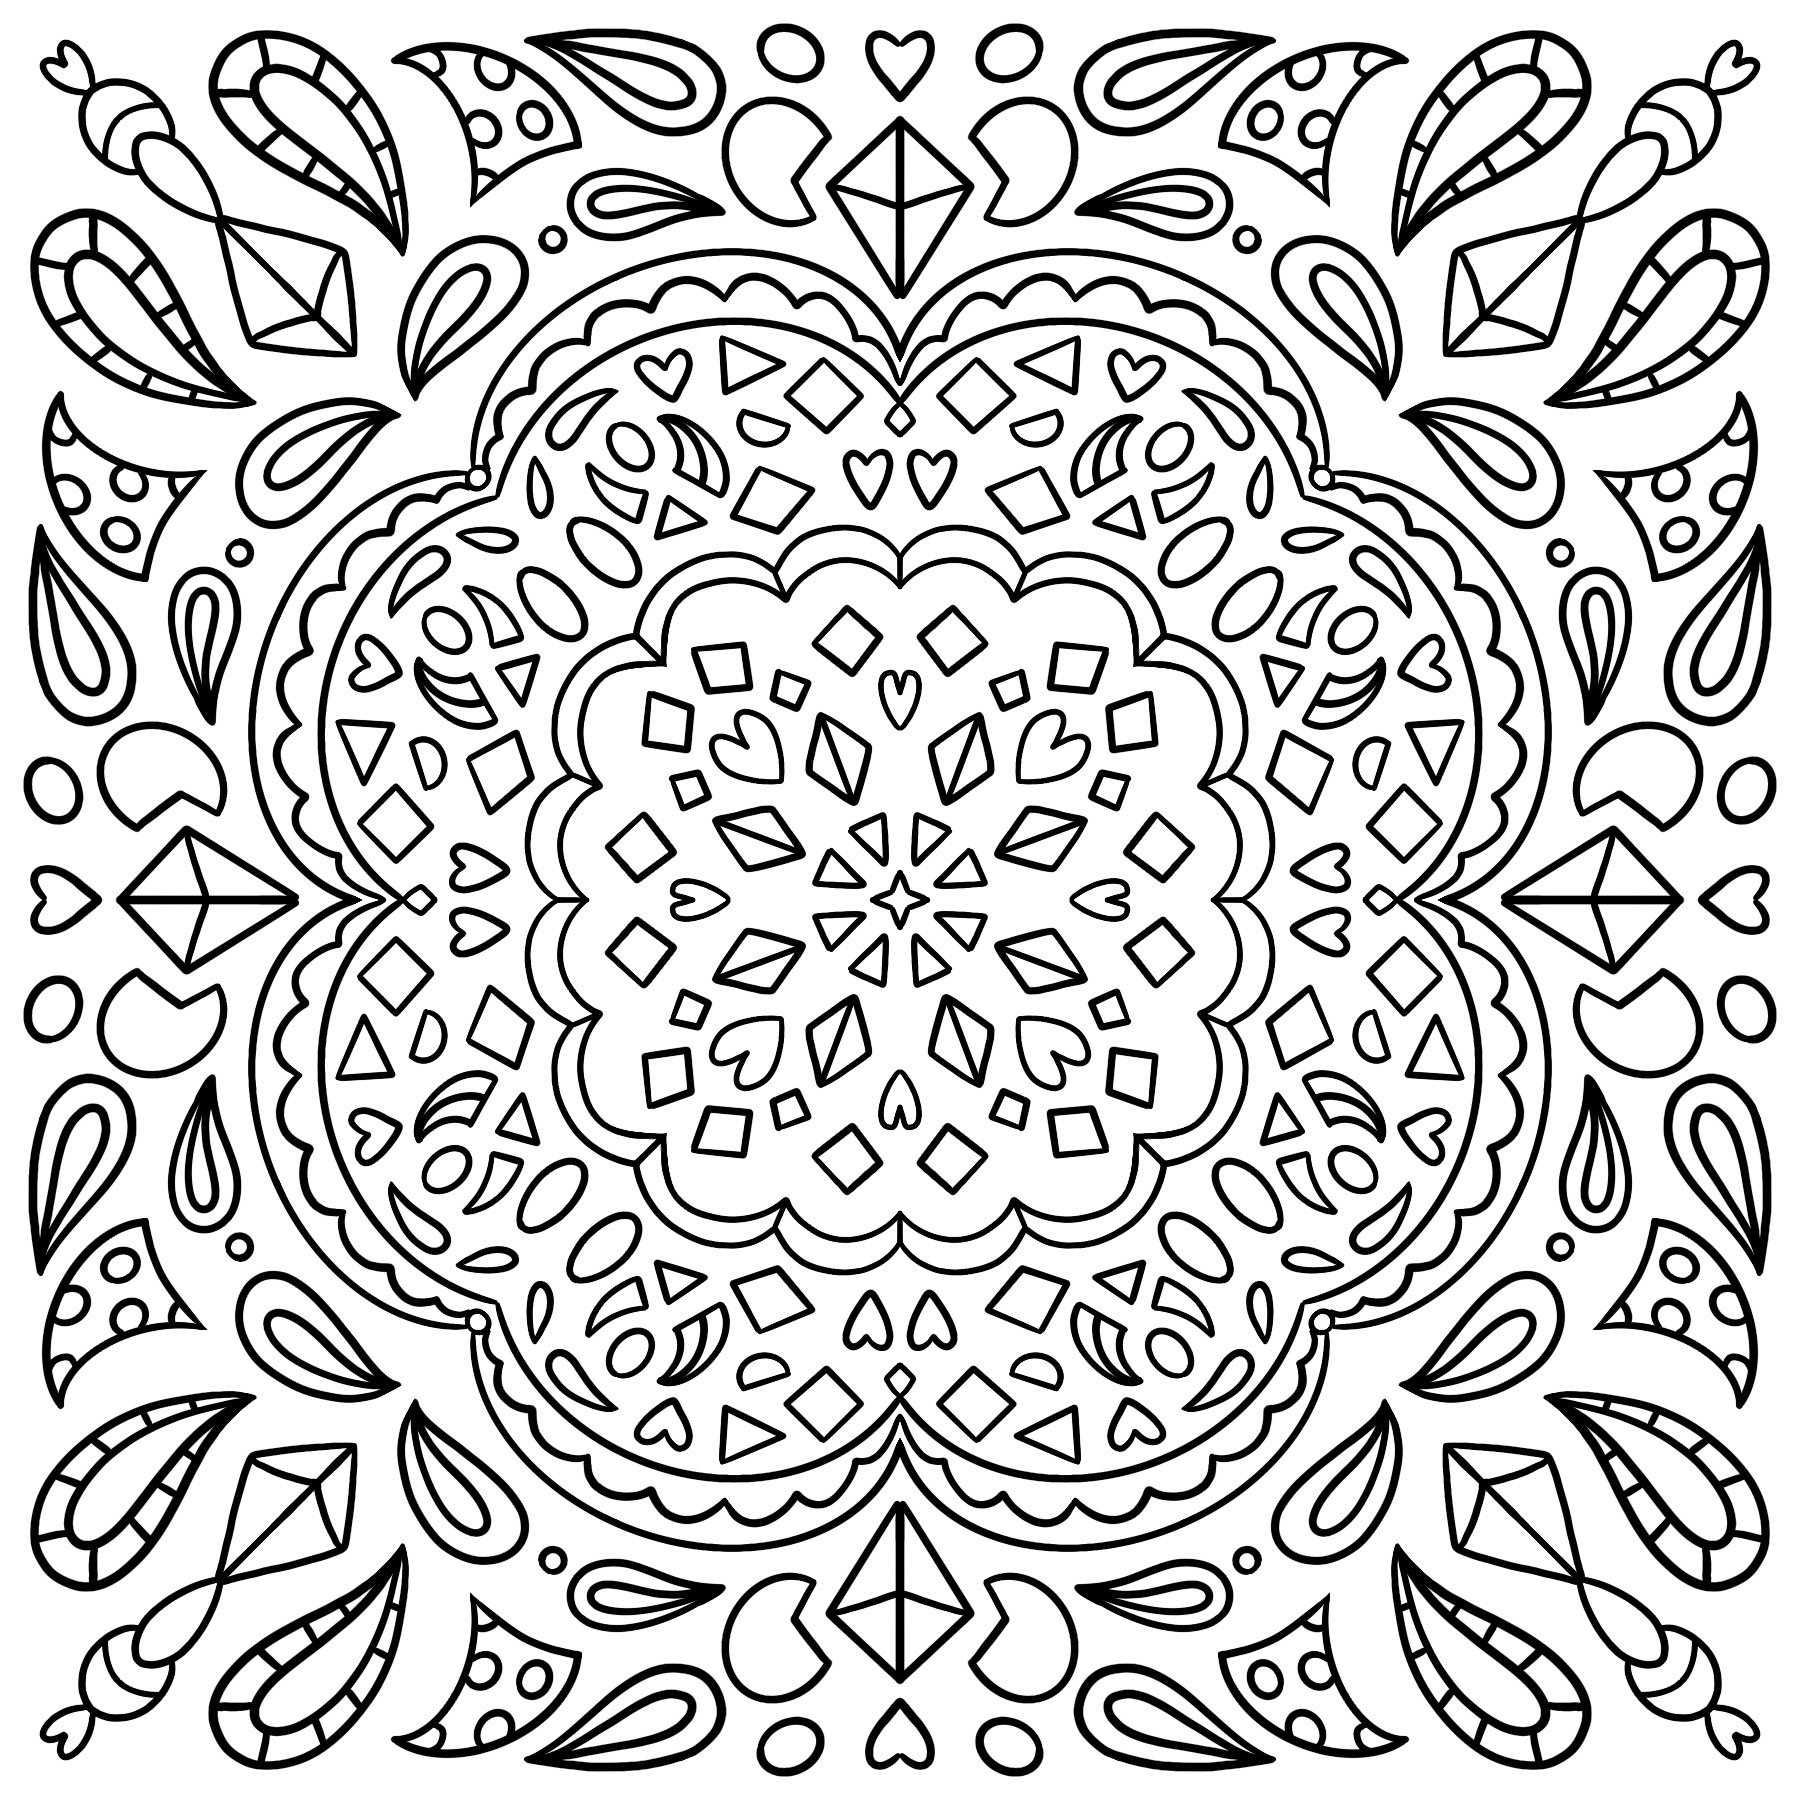 Geometric shapes colouring page